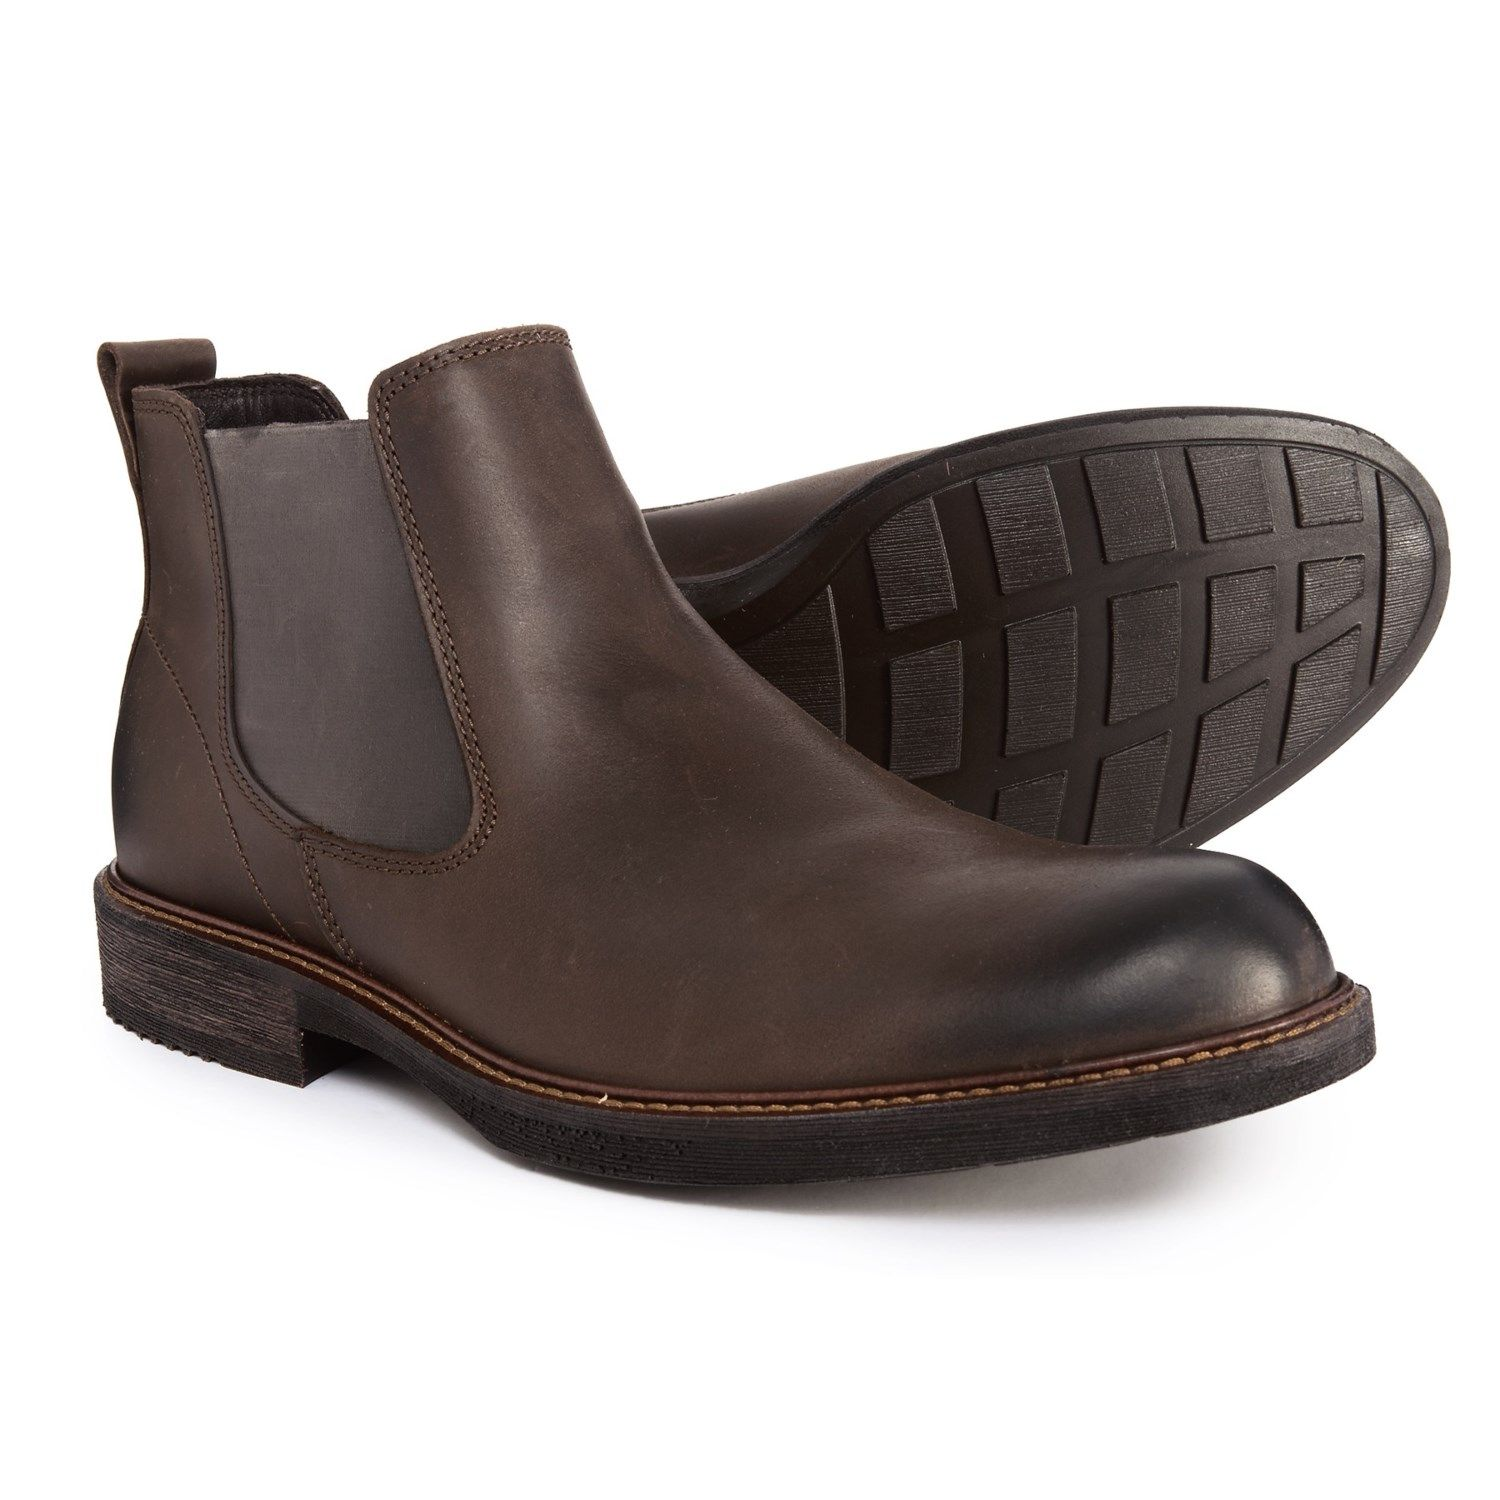 247a850f451 ECCO Kenton Chelsea Boots (For Men) in Coffee at Sierra Trading Post.  Celebrating 30 Years Of Exploring.